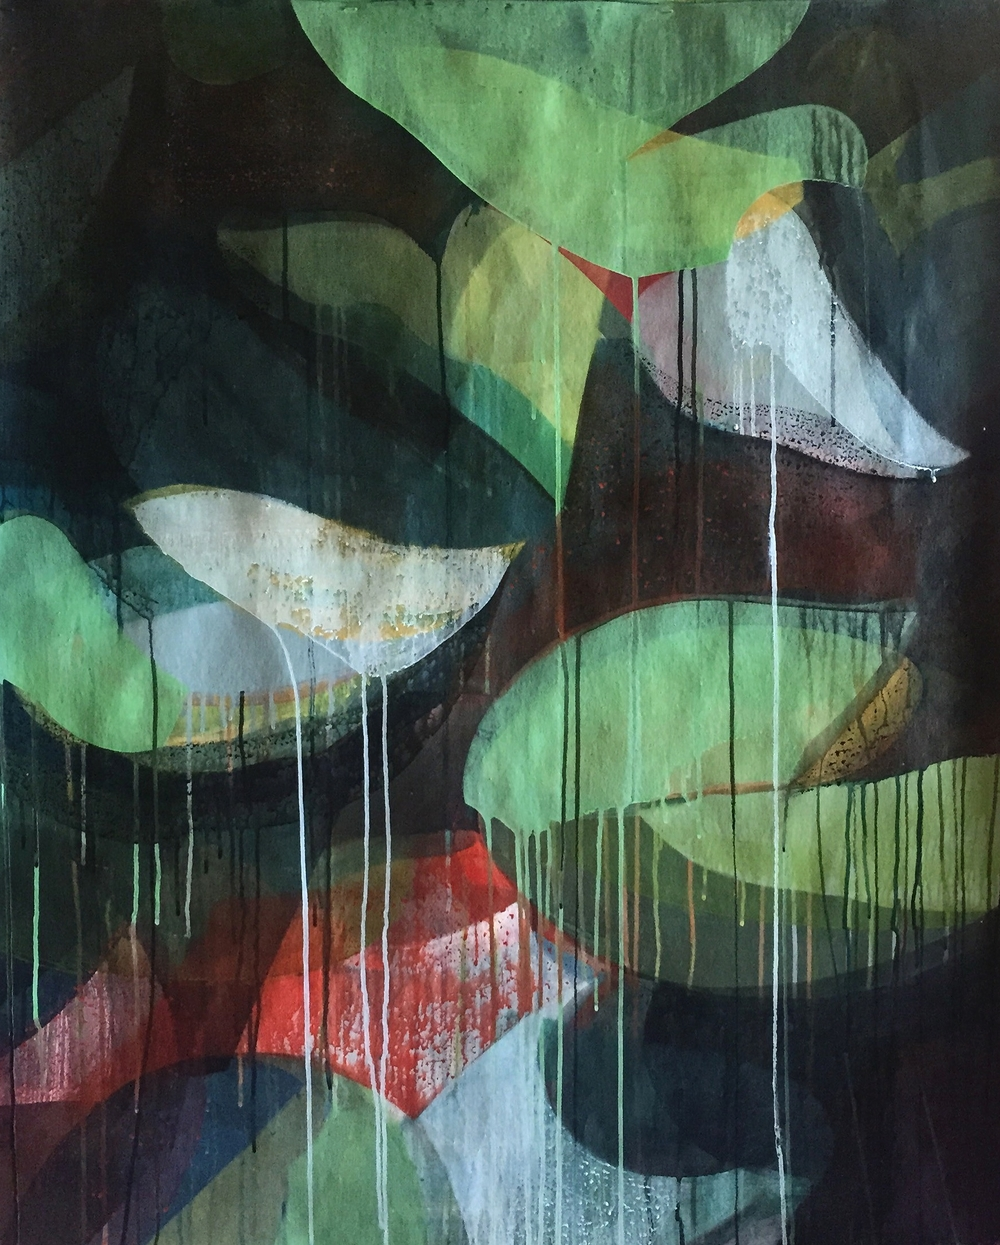 "spatterdock, 36"" x 26, water-based media on felt paper, 2015"